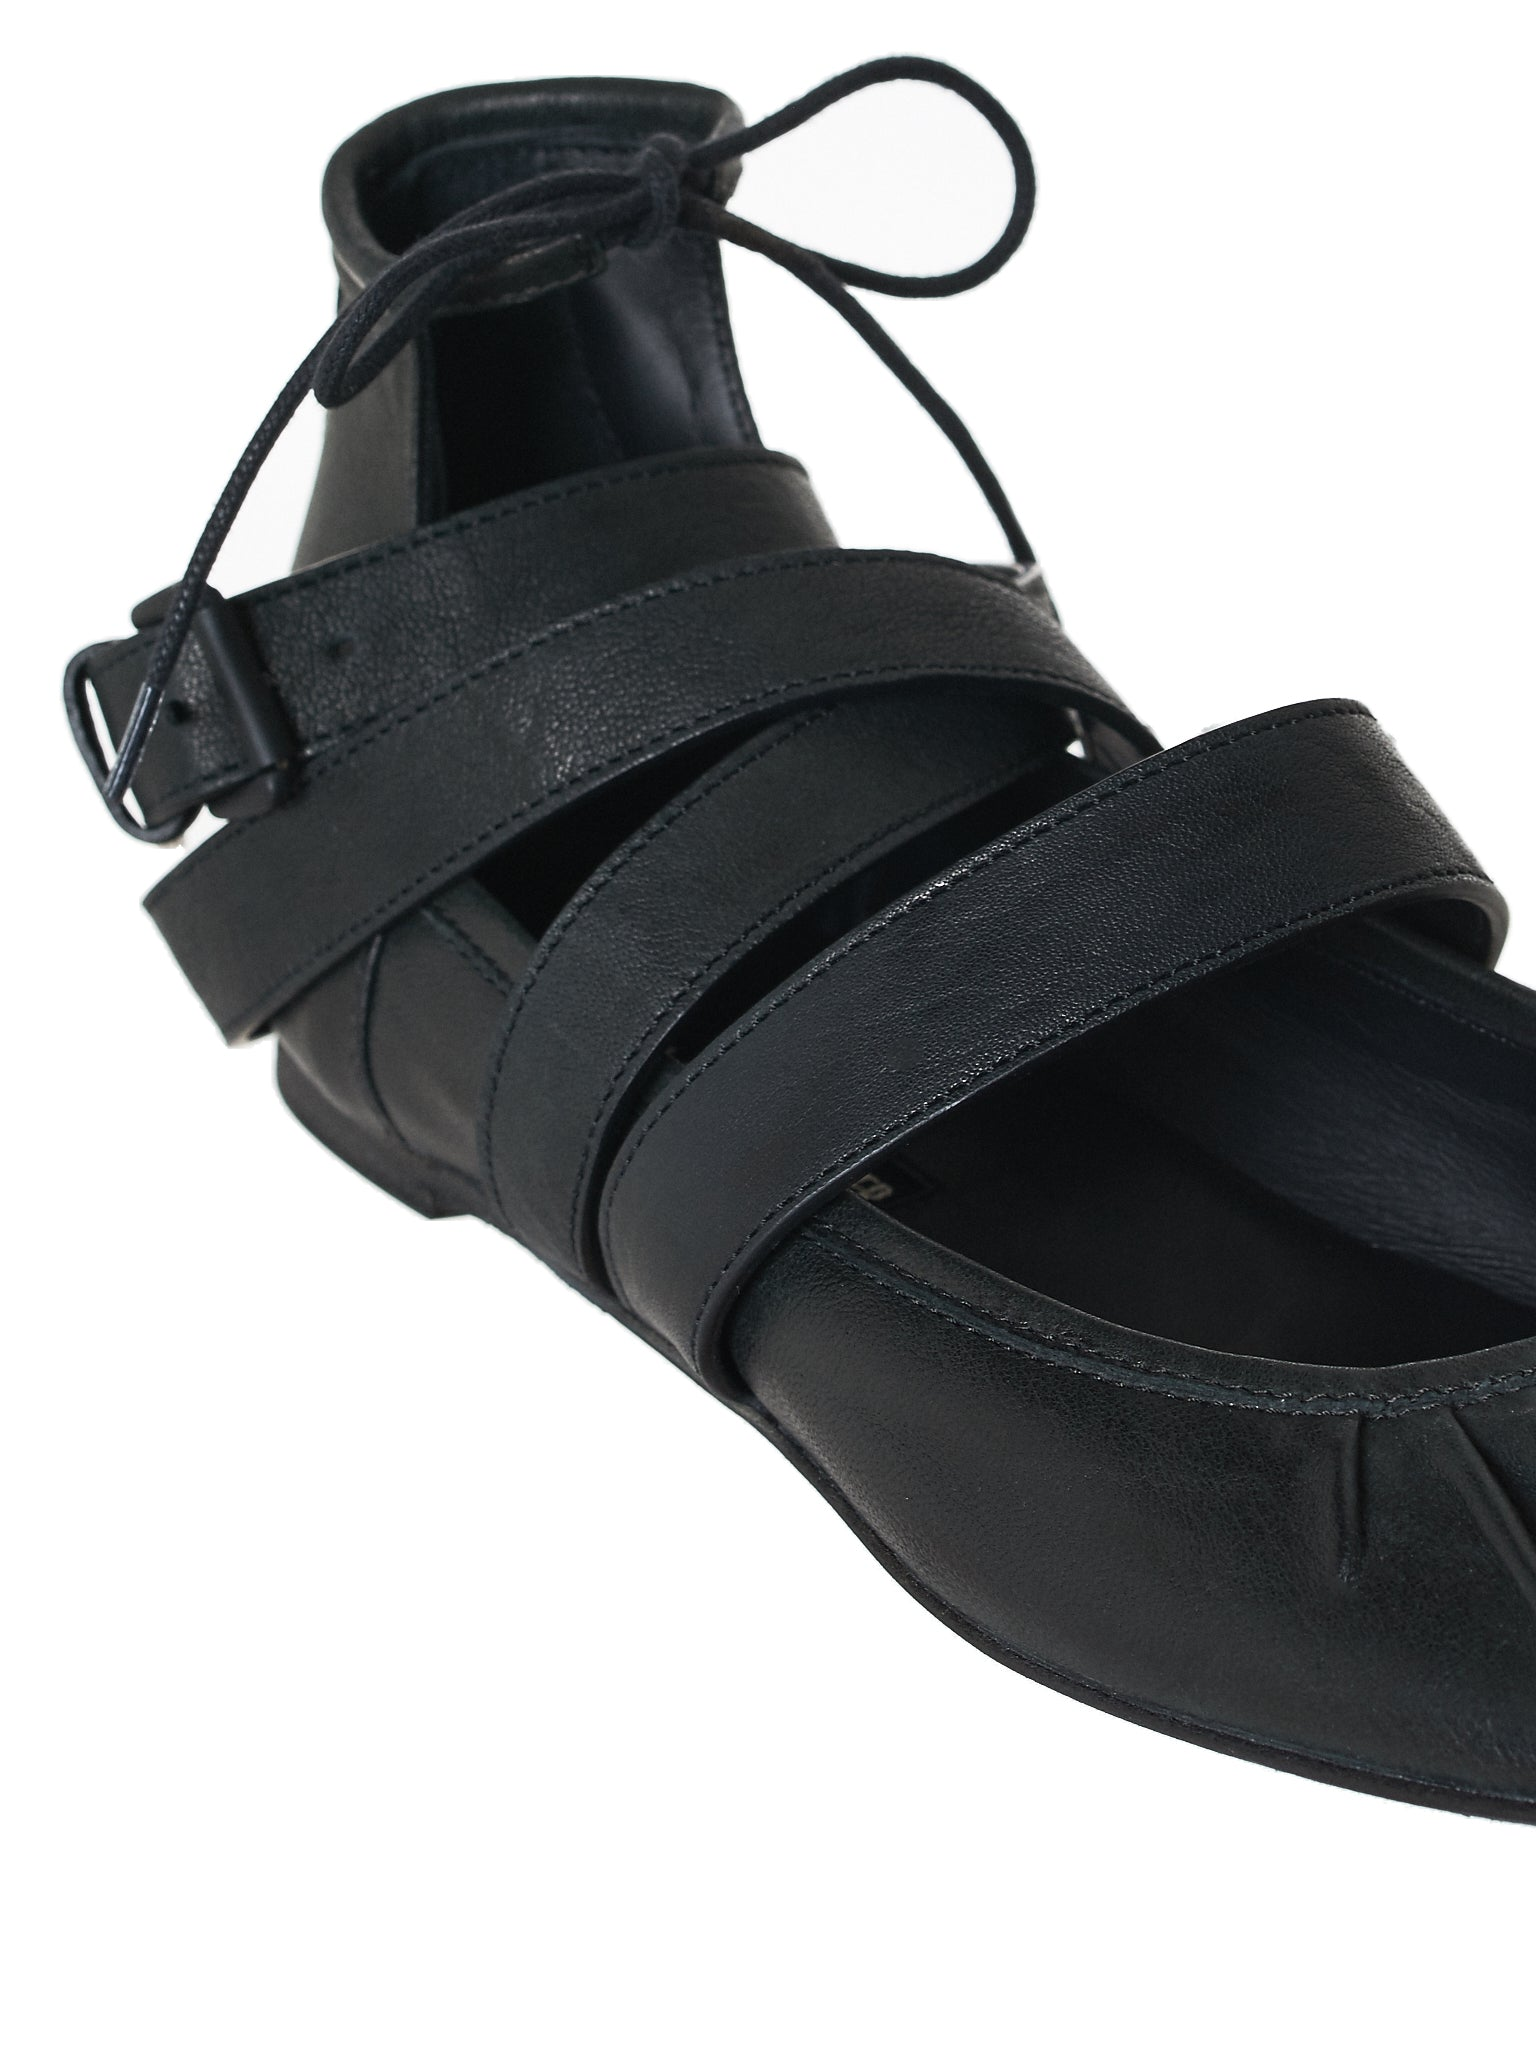 Ann Demeulemeester Leather Flats - Hlorenzo Detail 2